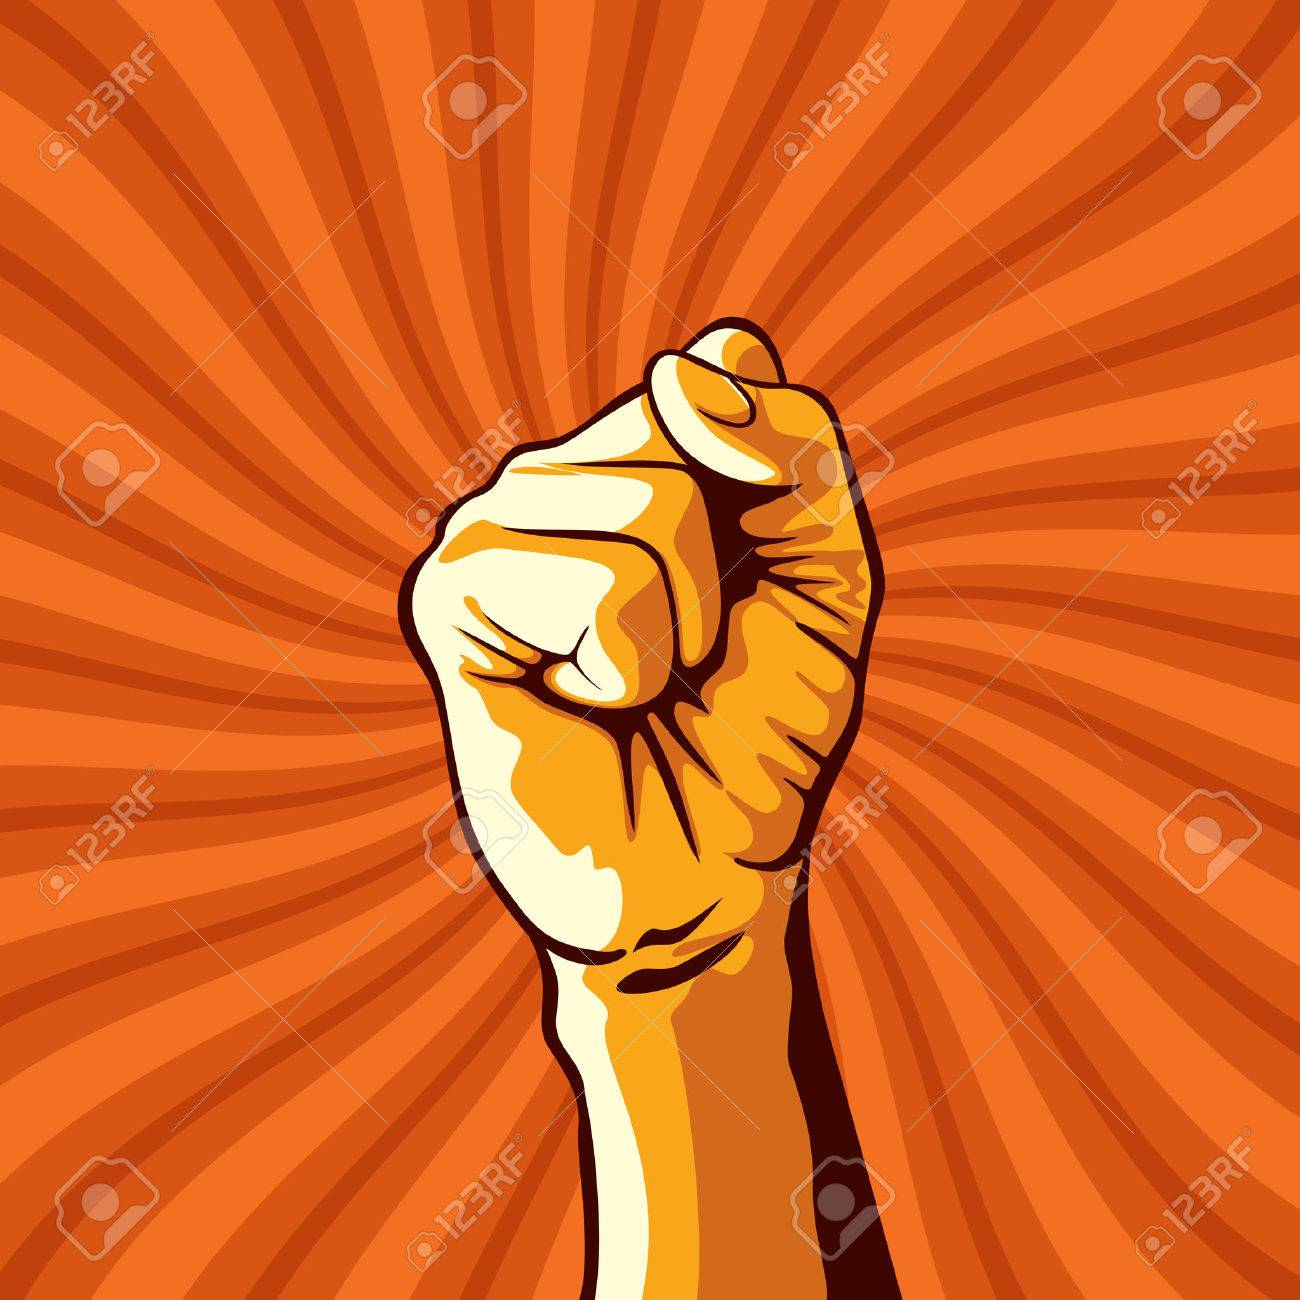 clenched fist held in protest illustration. Standard-Bild - 37109037